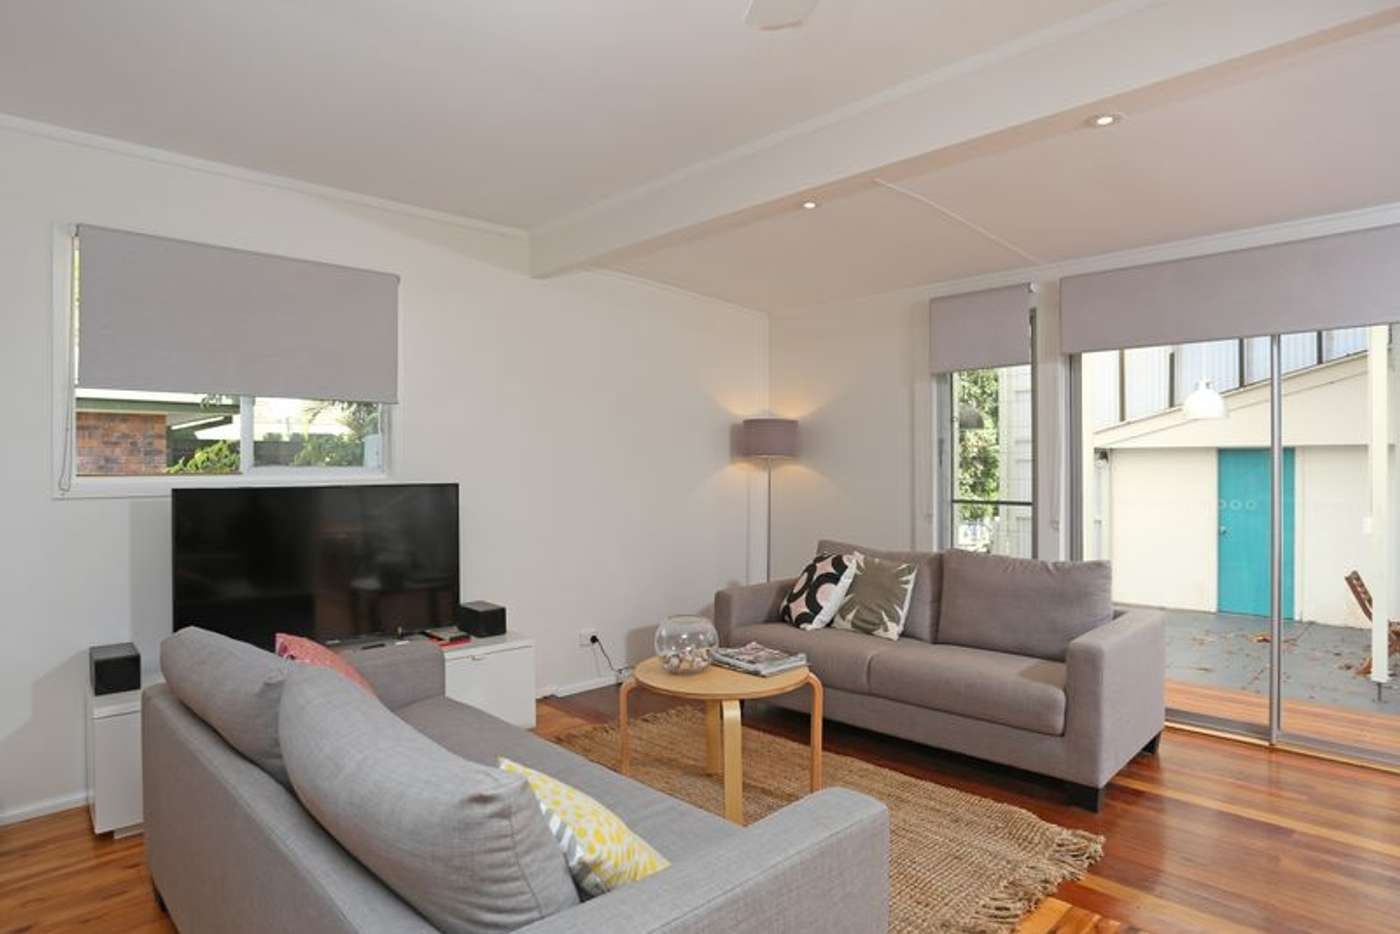 Sixth view of Homely house listing, 4 Micalo Street, Iluka NSW 2466